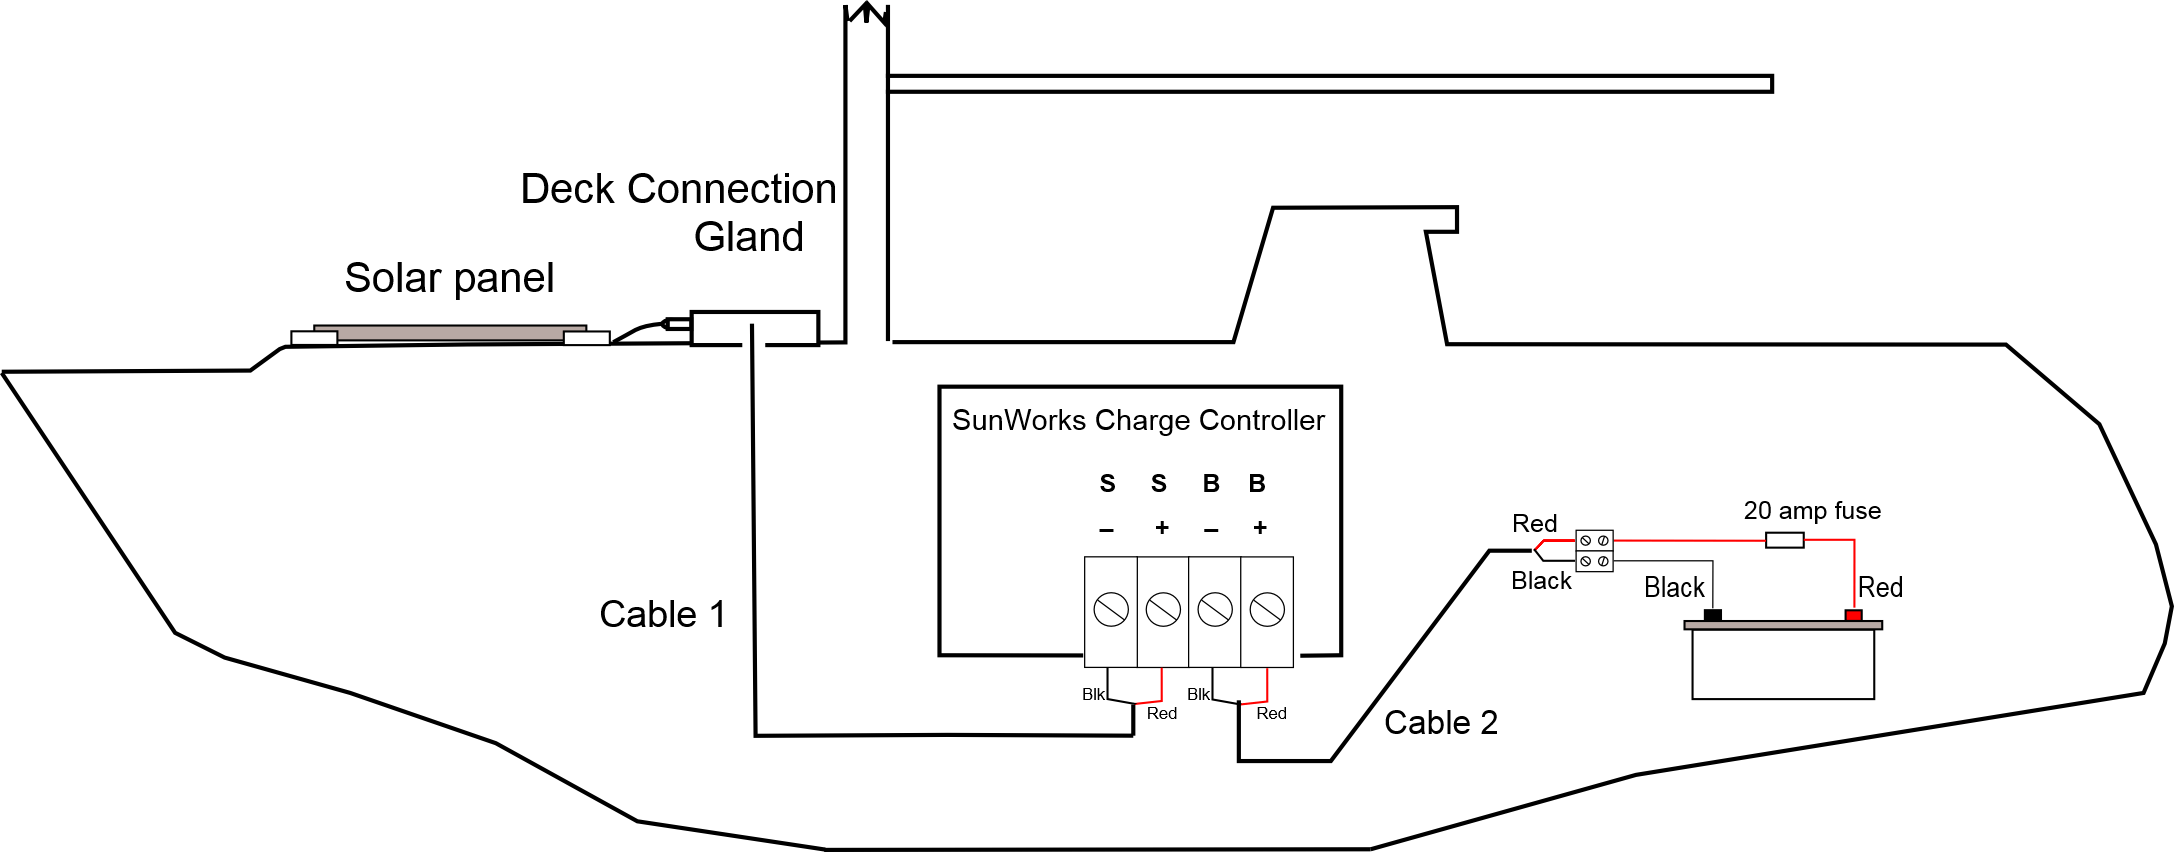 solar panel regulator wiring diagram mains powered smoke alarm charge controller with lcd display 11 amp sunworks